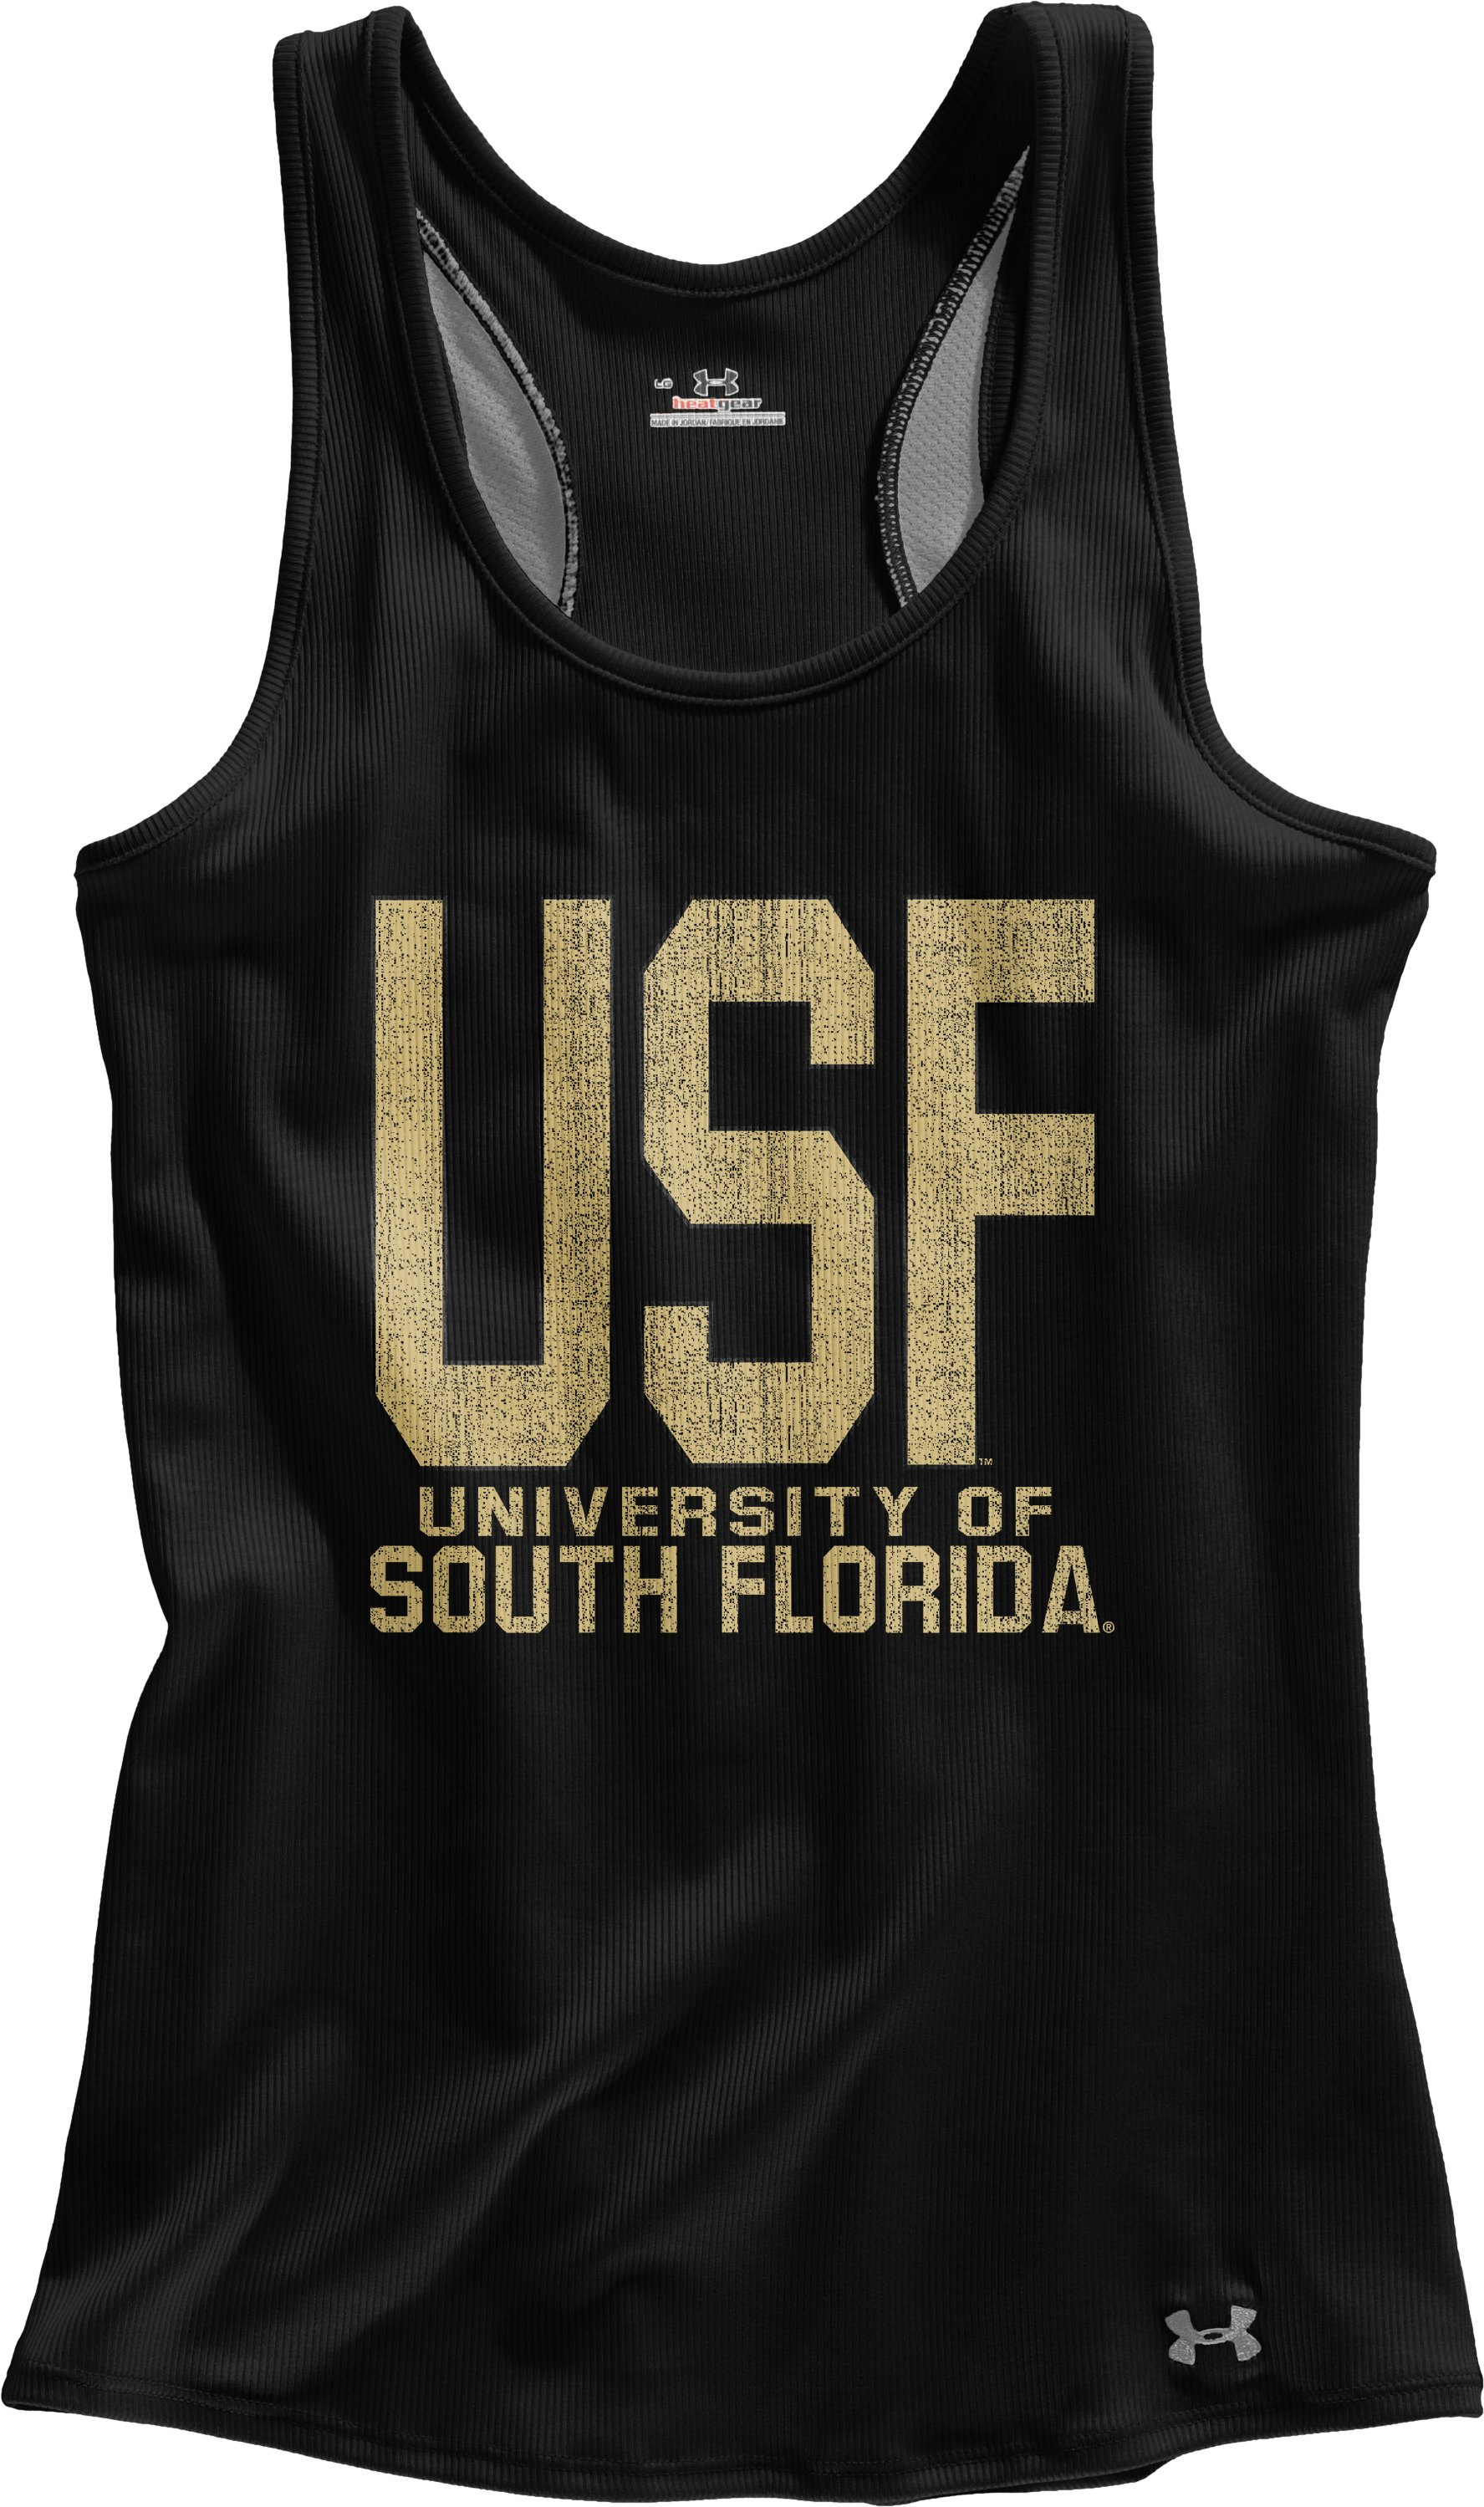 Women's South Florida UA Victory Tank, Black , Laydown